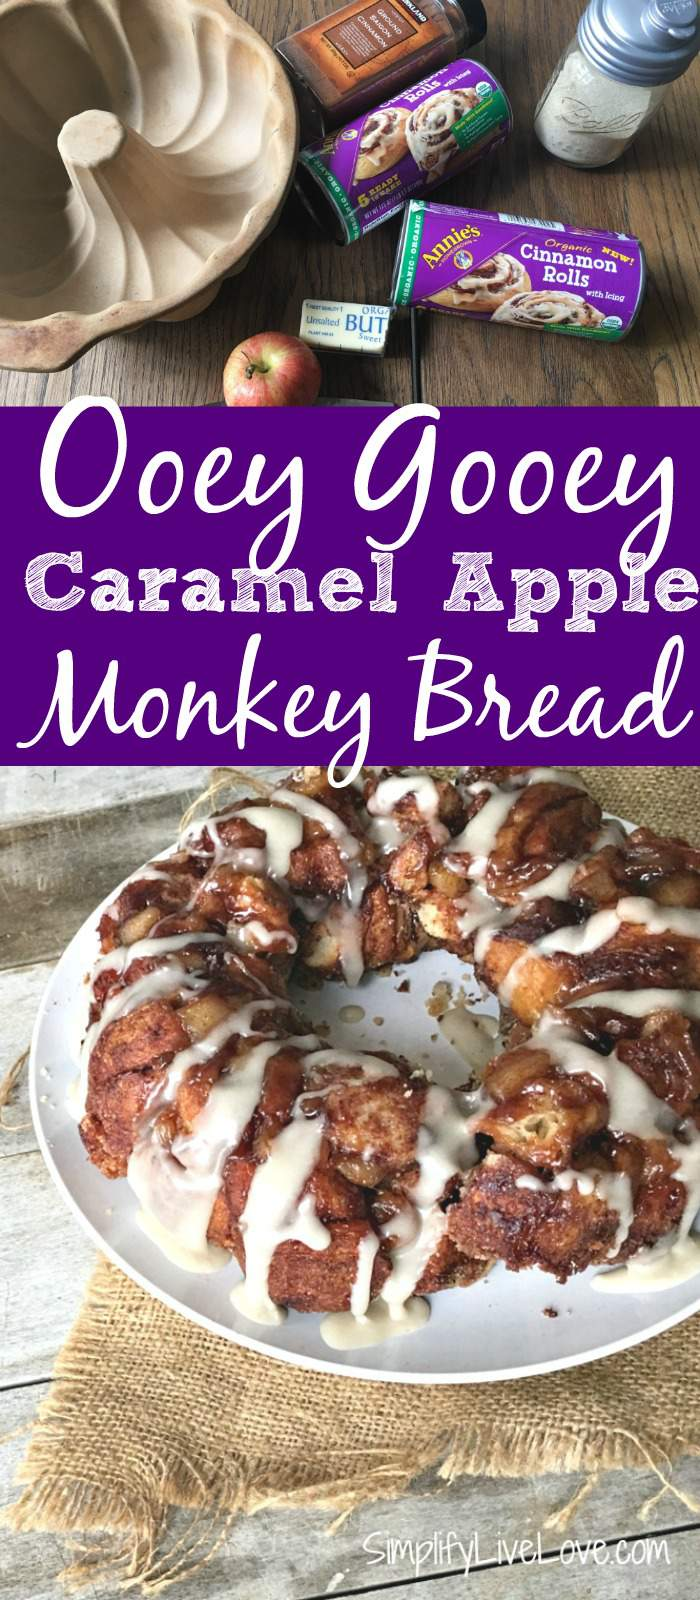 This caramel apple monkey bread made with Annie's Homegrown Organics, features chunks of apples and easy homemade caramel to make an ooey gooey delicious treat your family will love! If you like Annie's Homegrown - you will want to watch this video too! So cute--> https://ooh.li/90a8502 #ad #yumforall #annieshomegrown